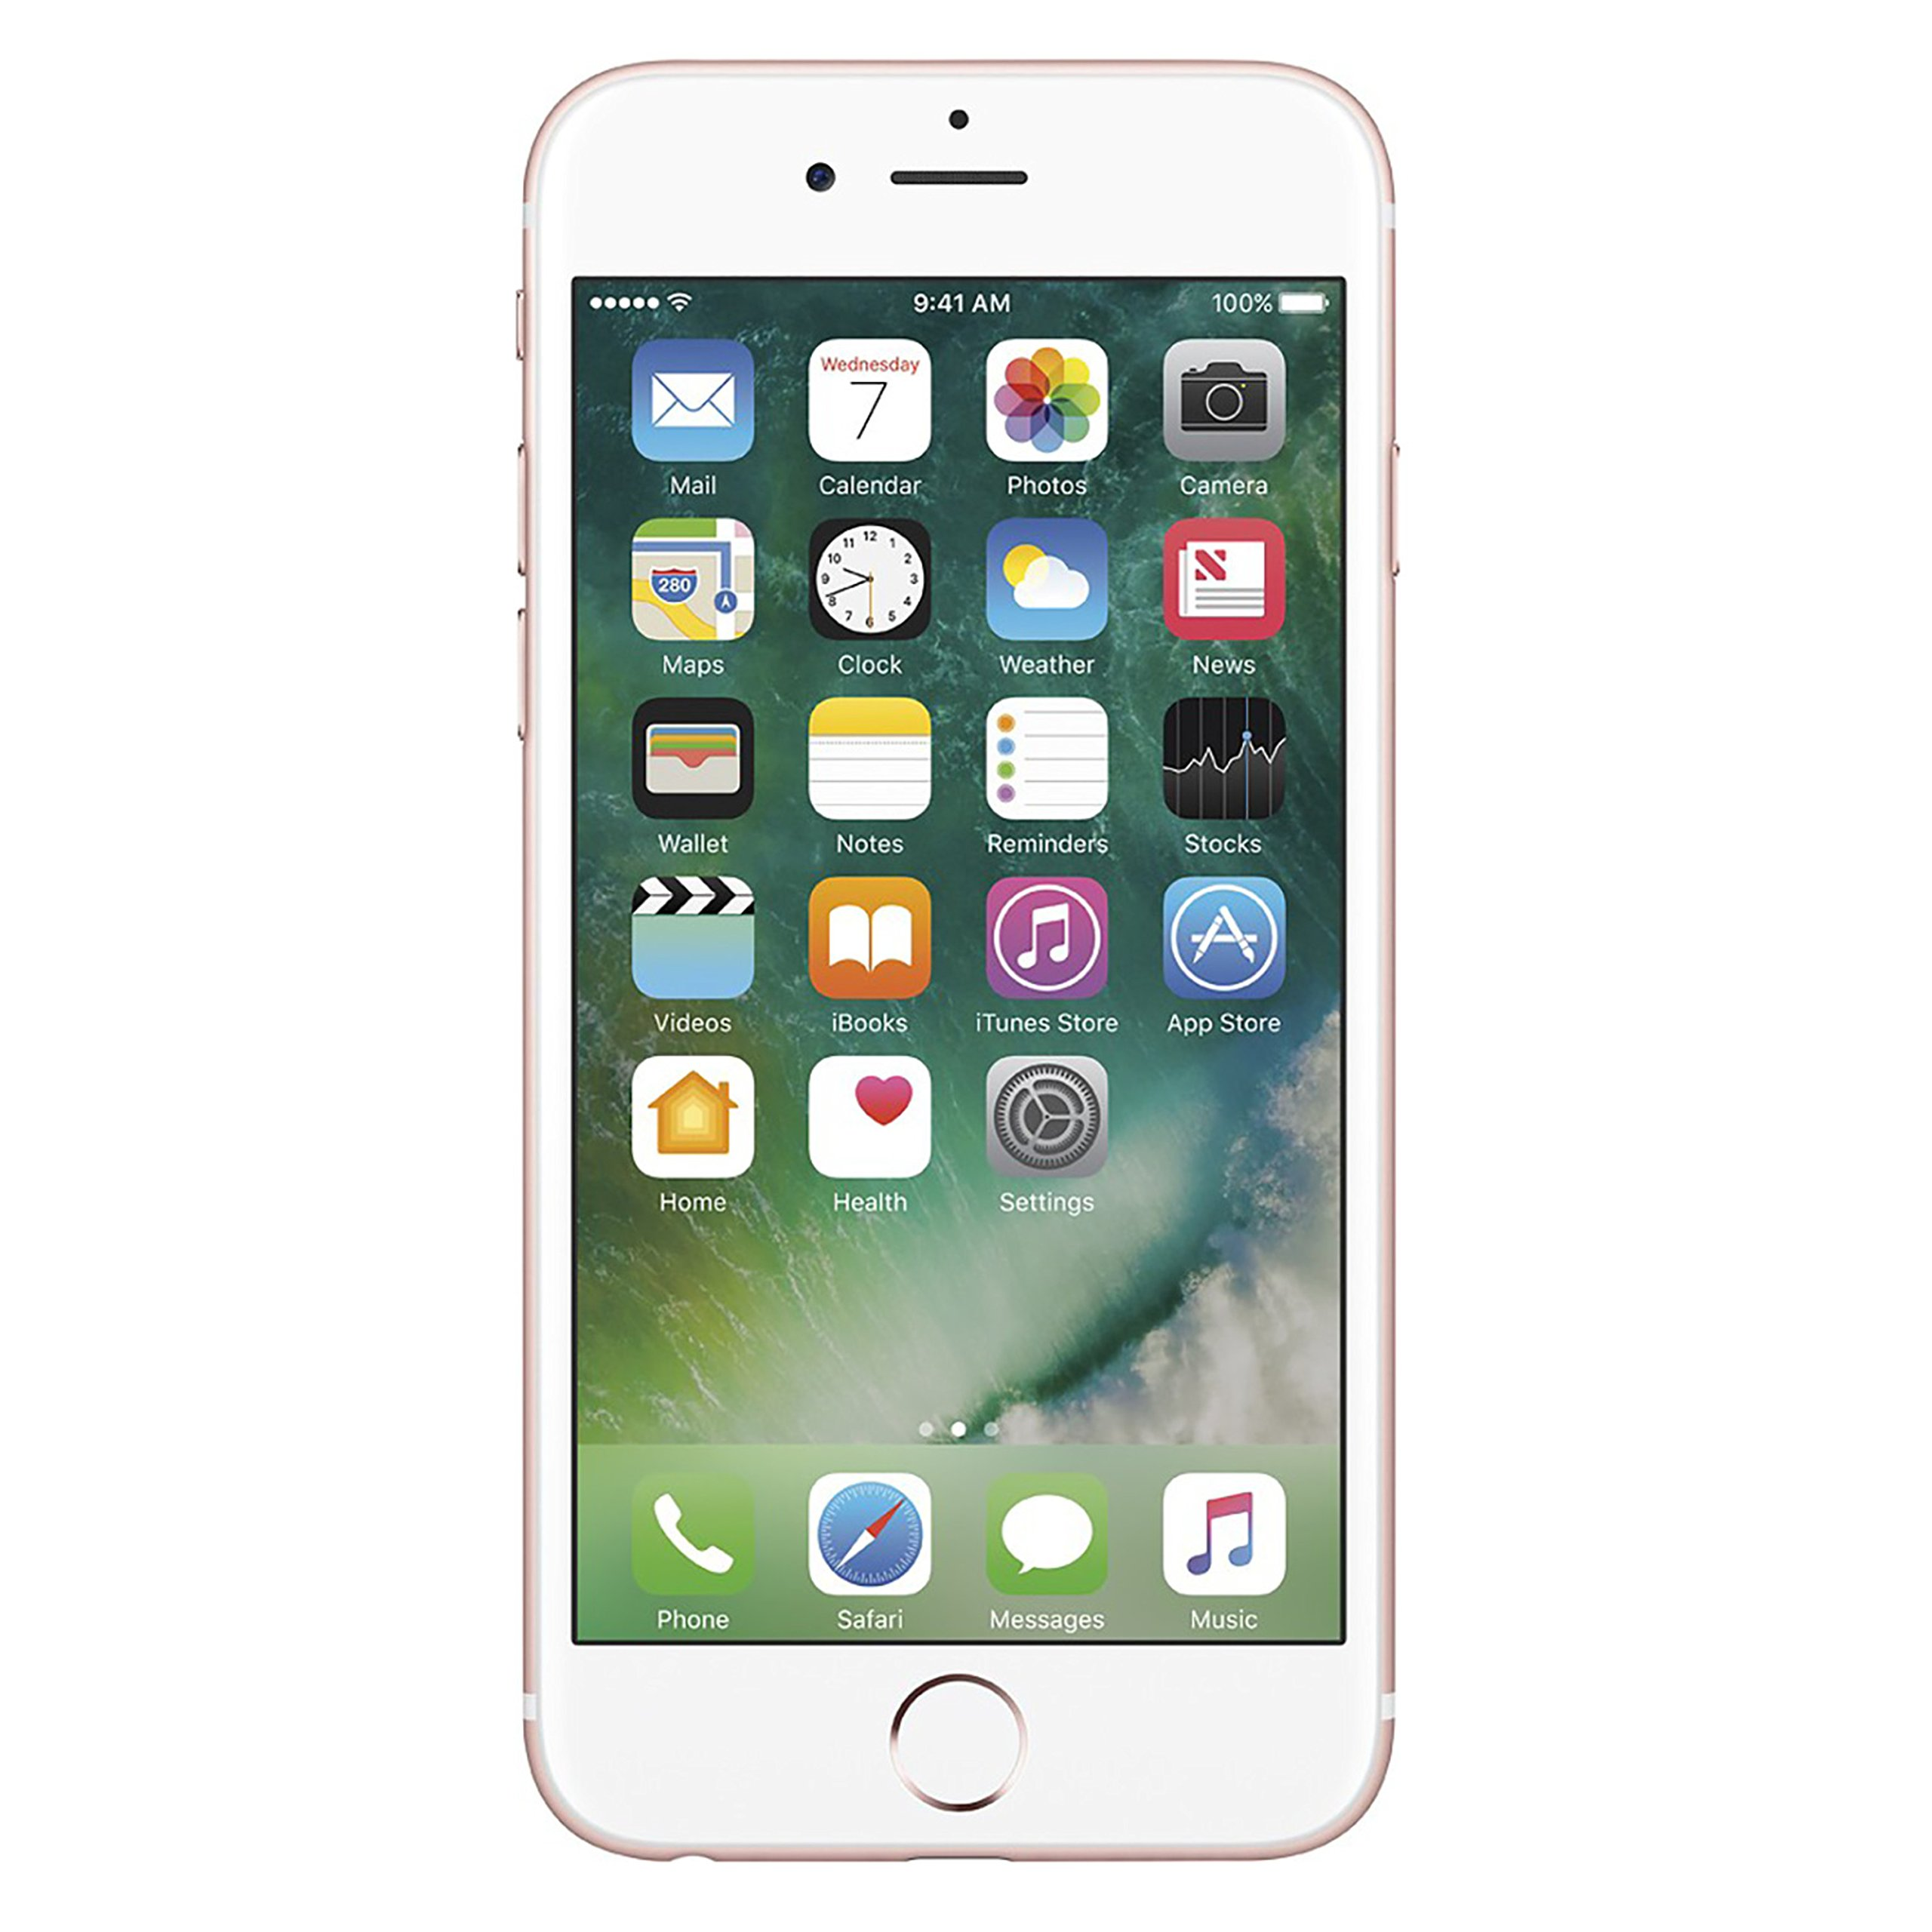 Apple iPhone 6S Plus, Fully Unlocked, 64GB - Rose Gold (Renewed)